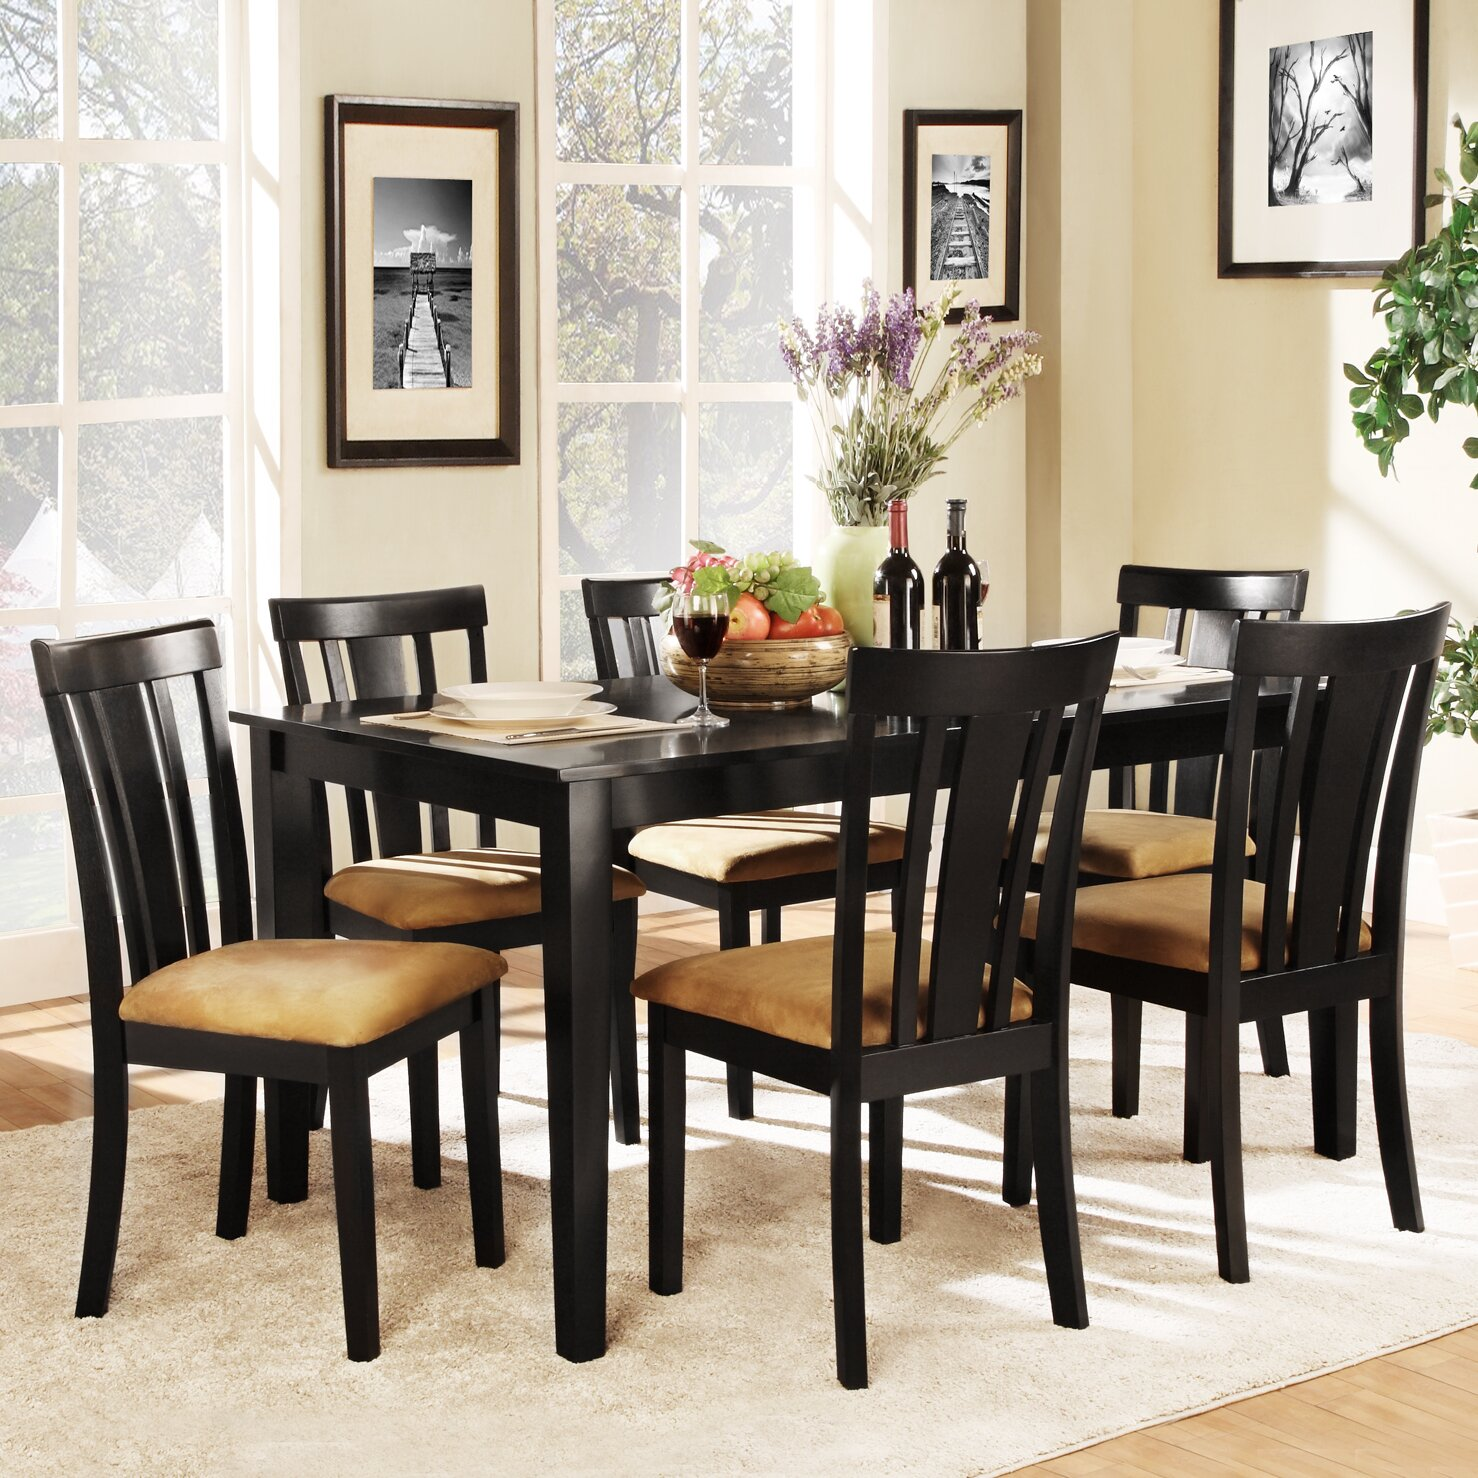 Kingstown home jeannette 7 piece dining set reviews for Home piece